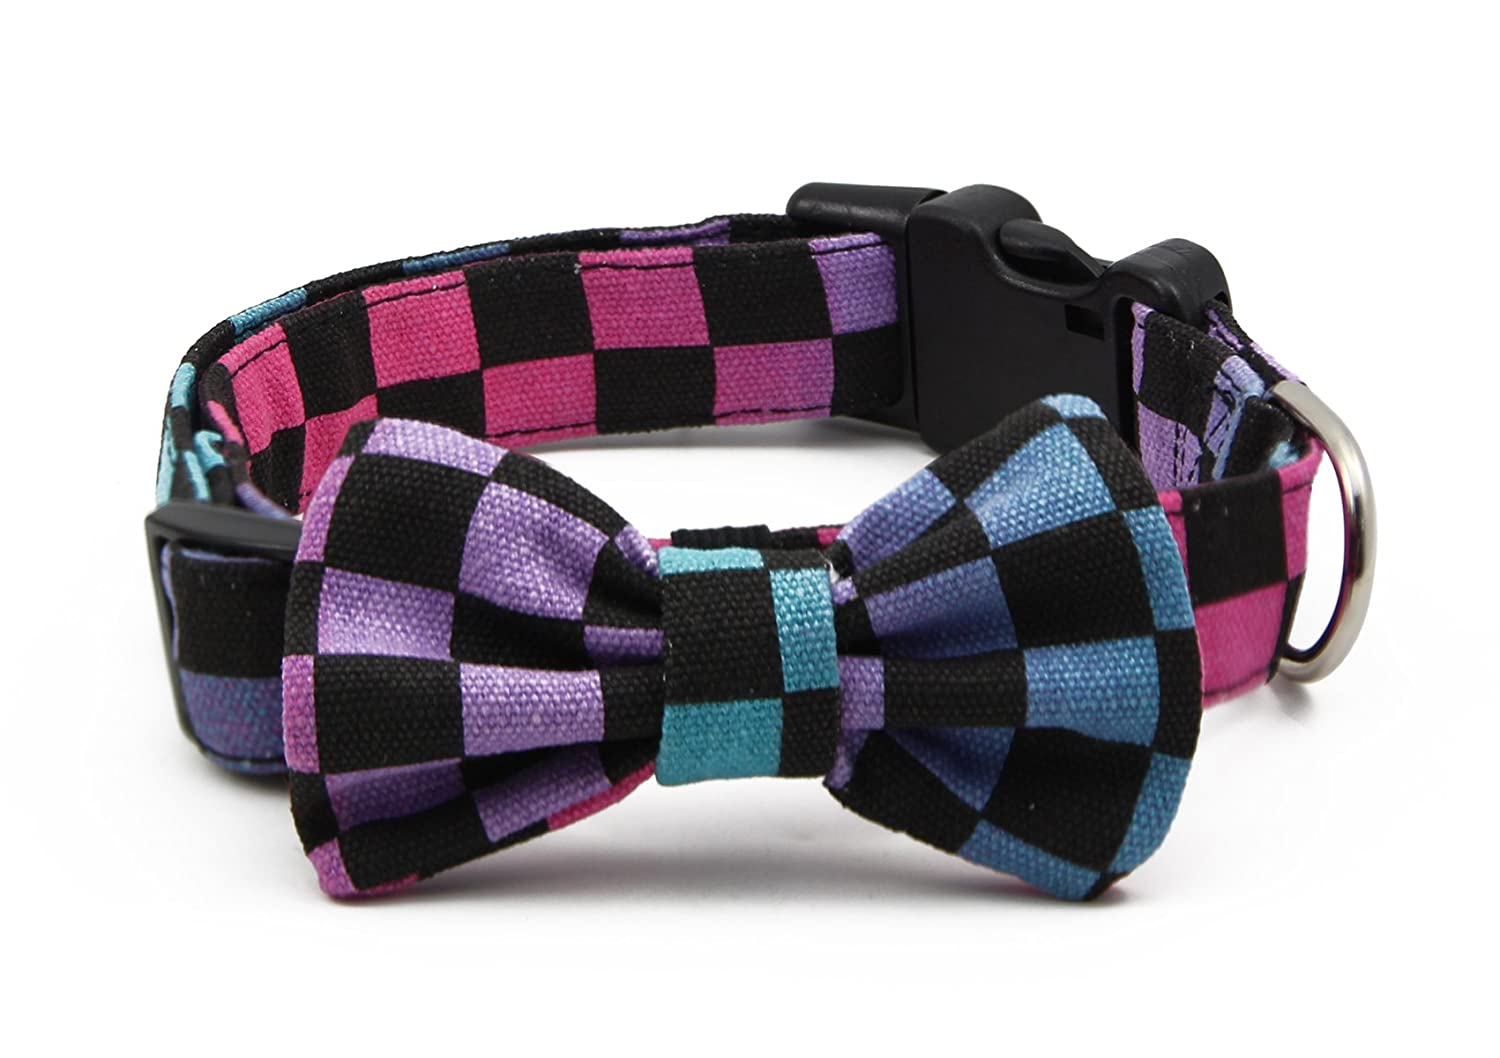 M BIG SMILE PAW Nylon Dog Collar with Bow Tie Detachable,Adjustable Dog Collar (Pattern 3(grid), M)